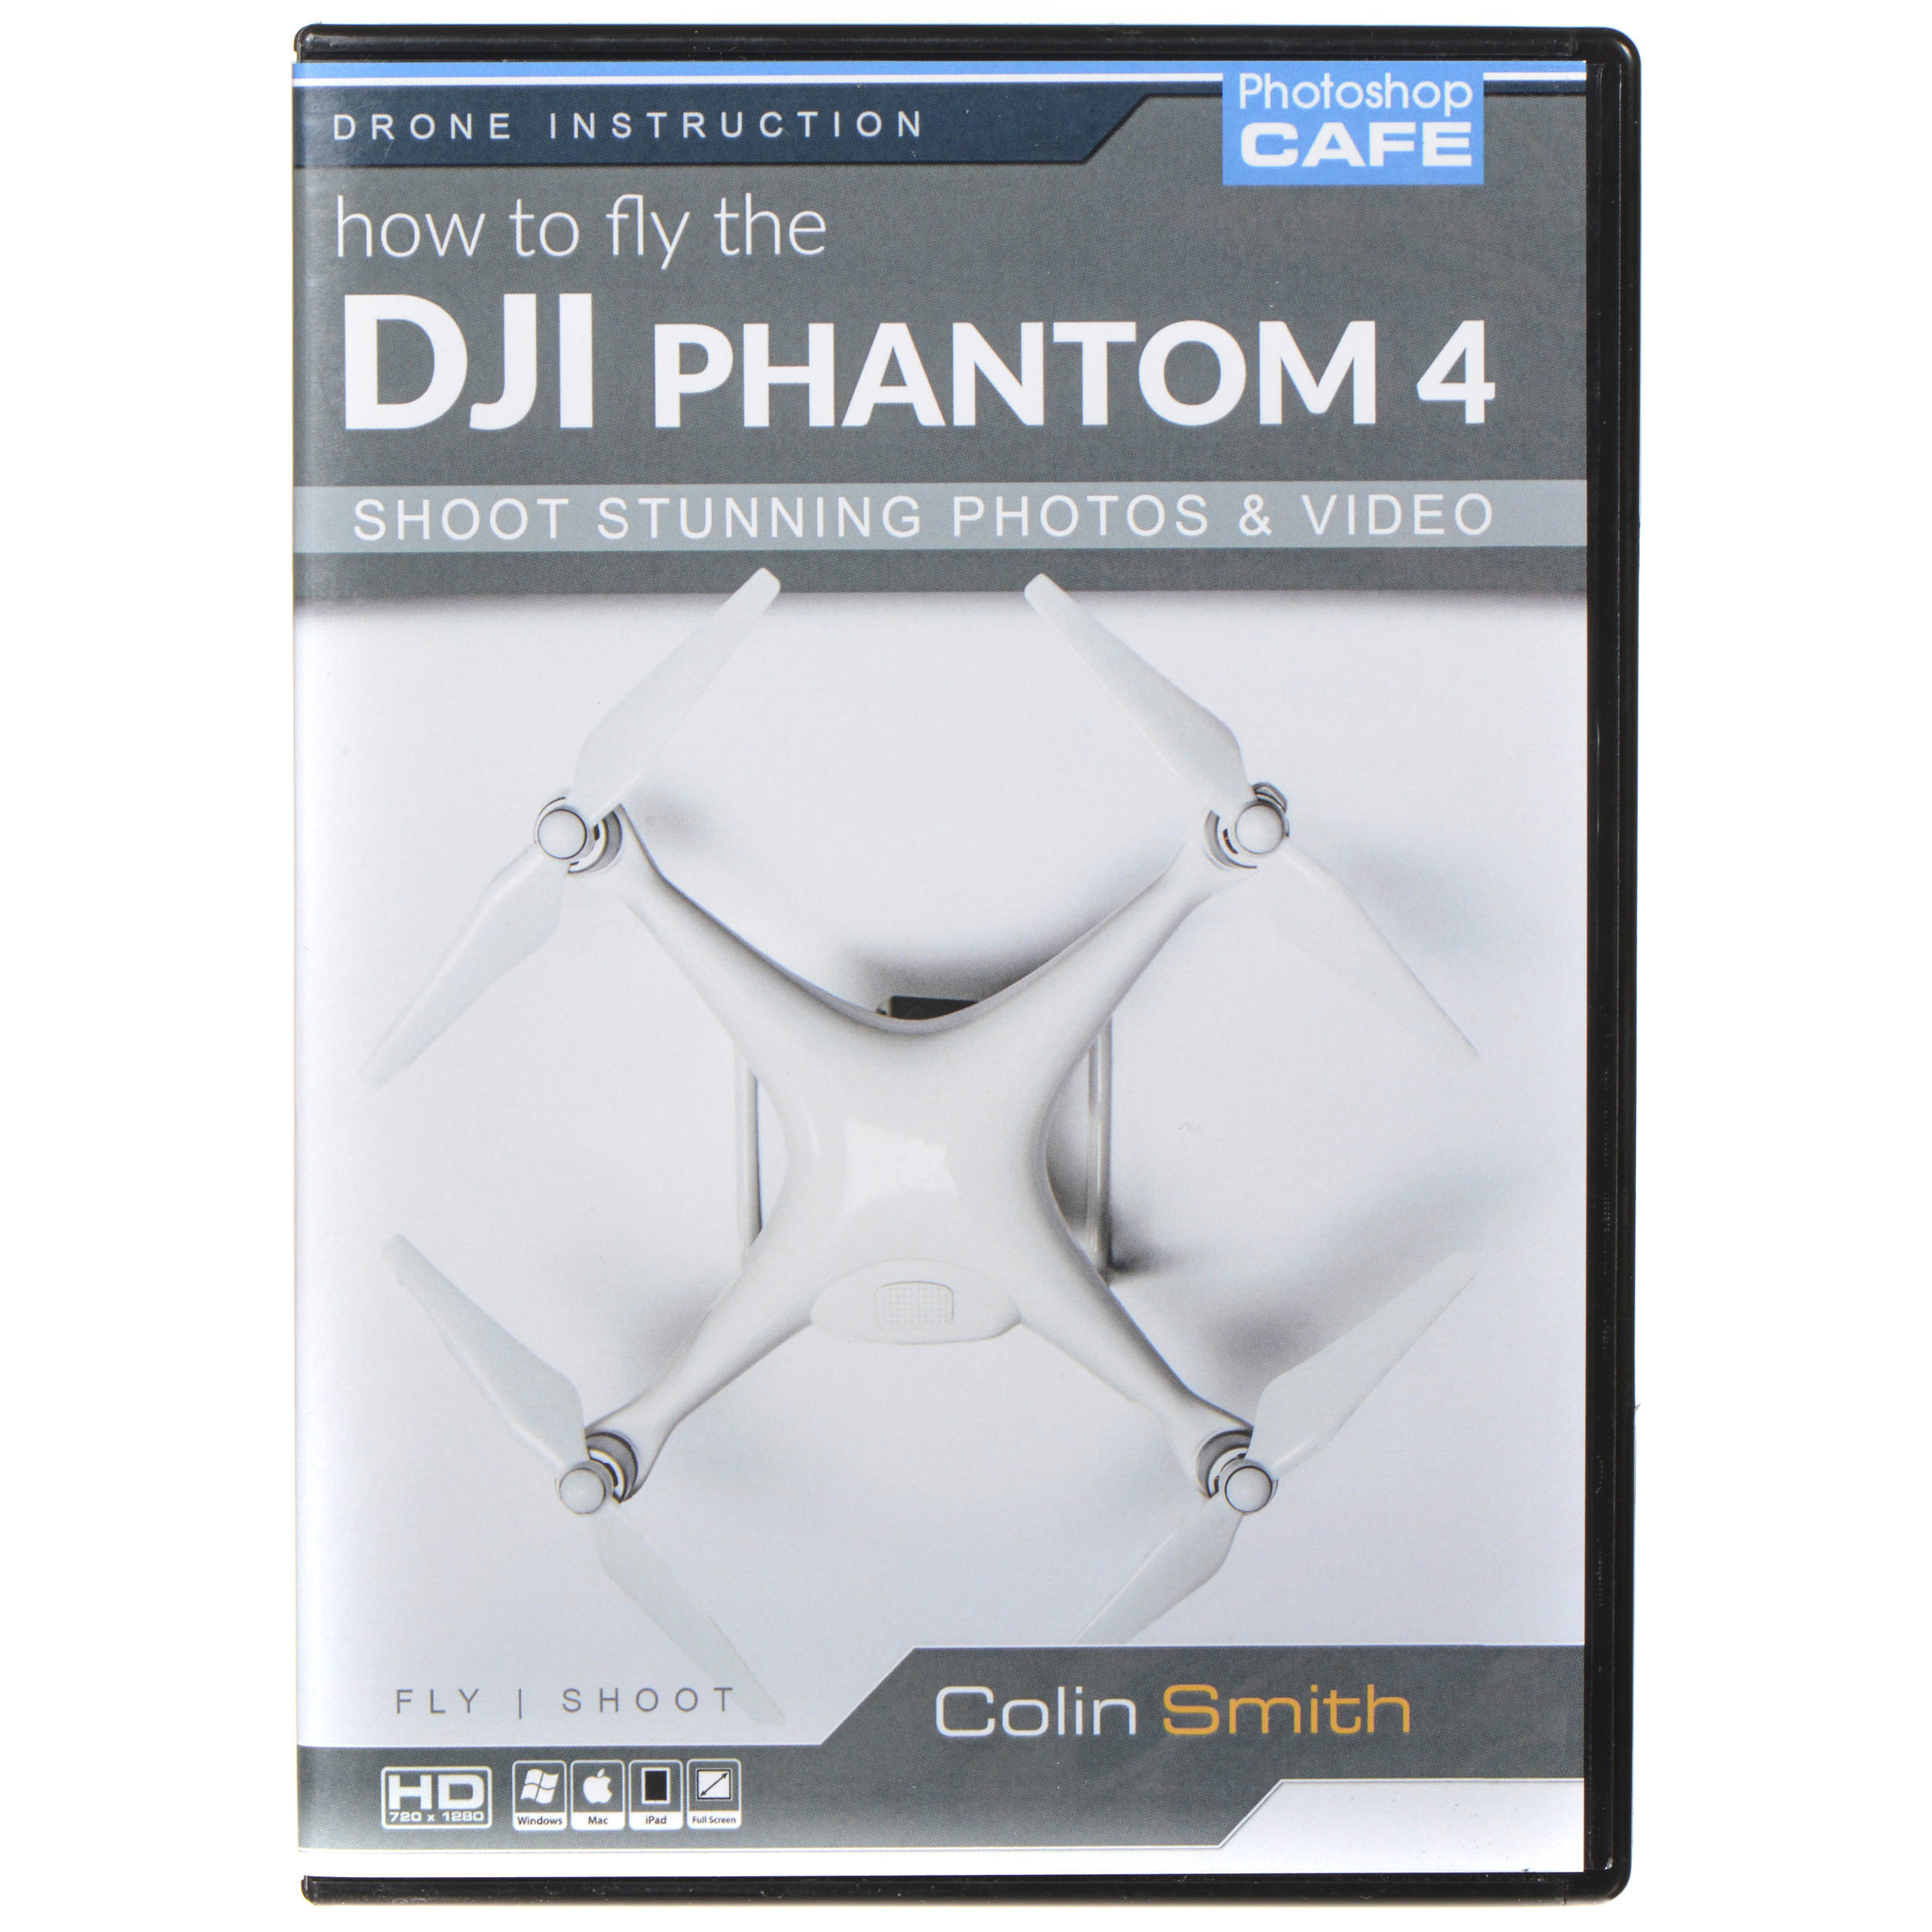 PhotoshopCAFE DVD-ROM: How to Fly DJI Phantom 4 and Shoot Stunning Photos and Videos